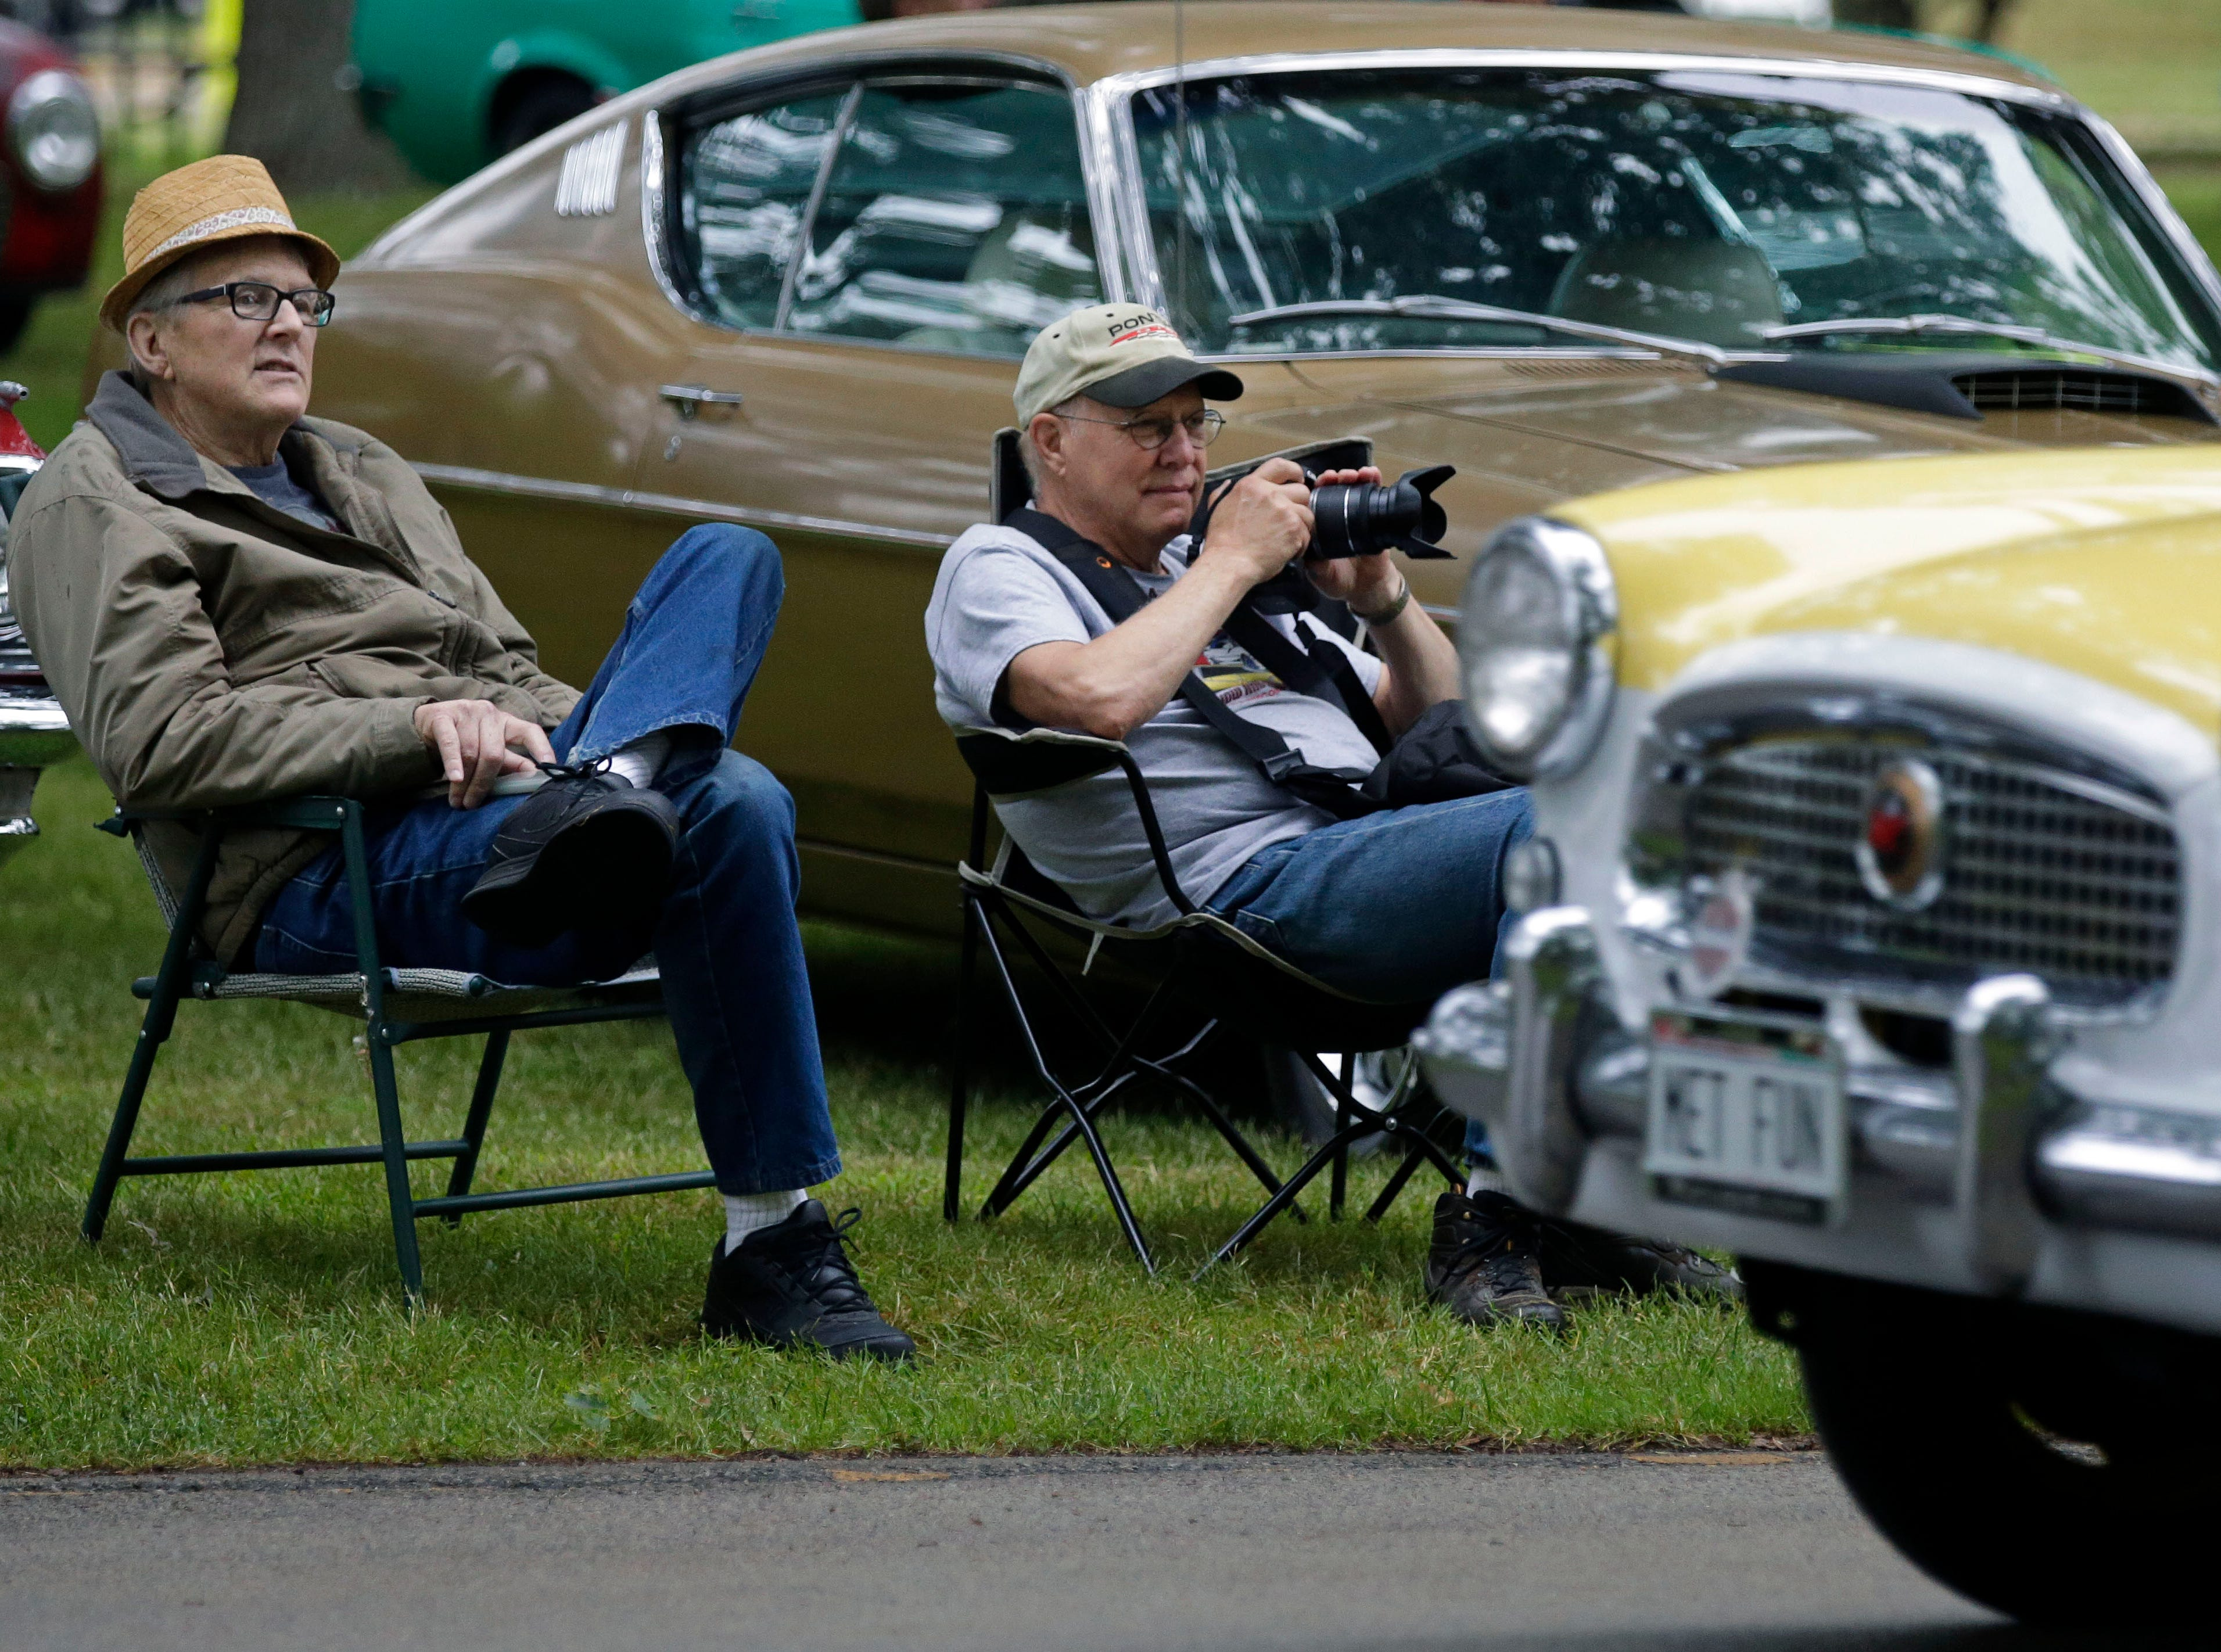 Wayne Weckwerth, left and Stan Feavel watch as cars arrive during the Appleton Old Car Show and Swap Meet Sunday, July 22, 2018, at Pierce Park in Appleton, Wis.